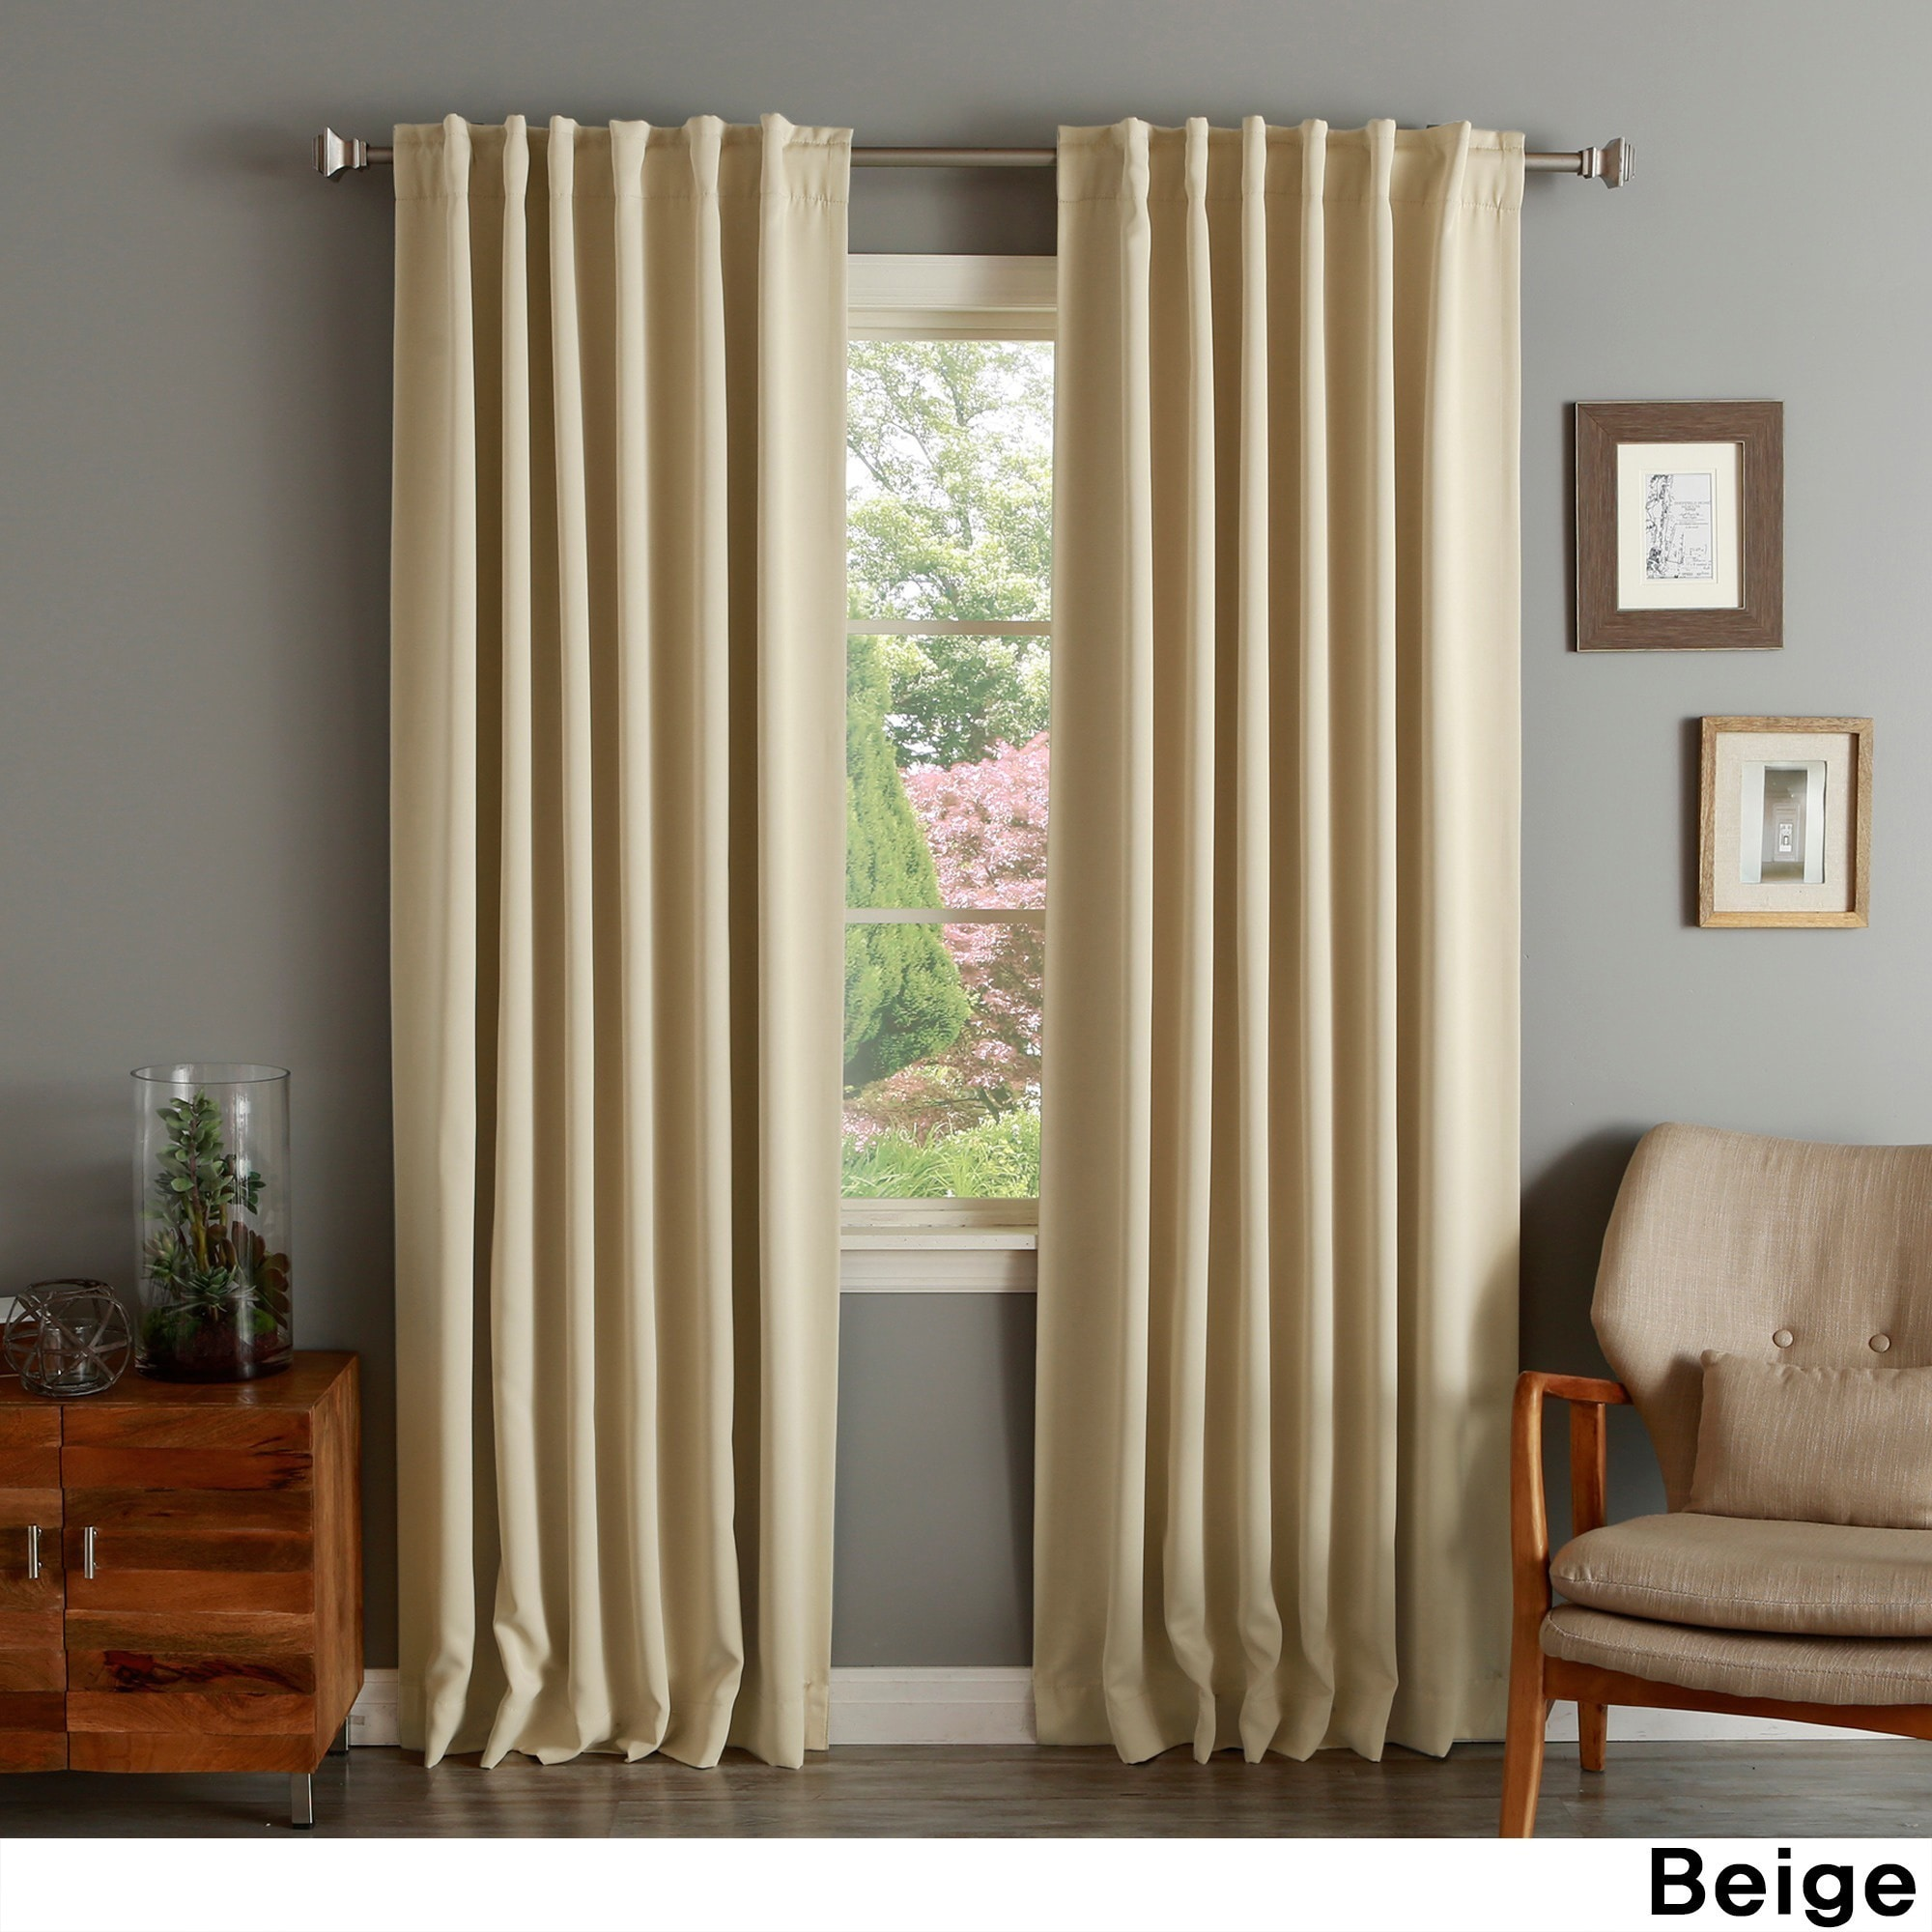 drapery what to long drapes inch buying curtains room pin aspects consider ideas when